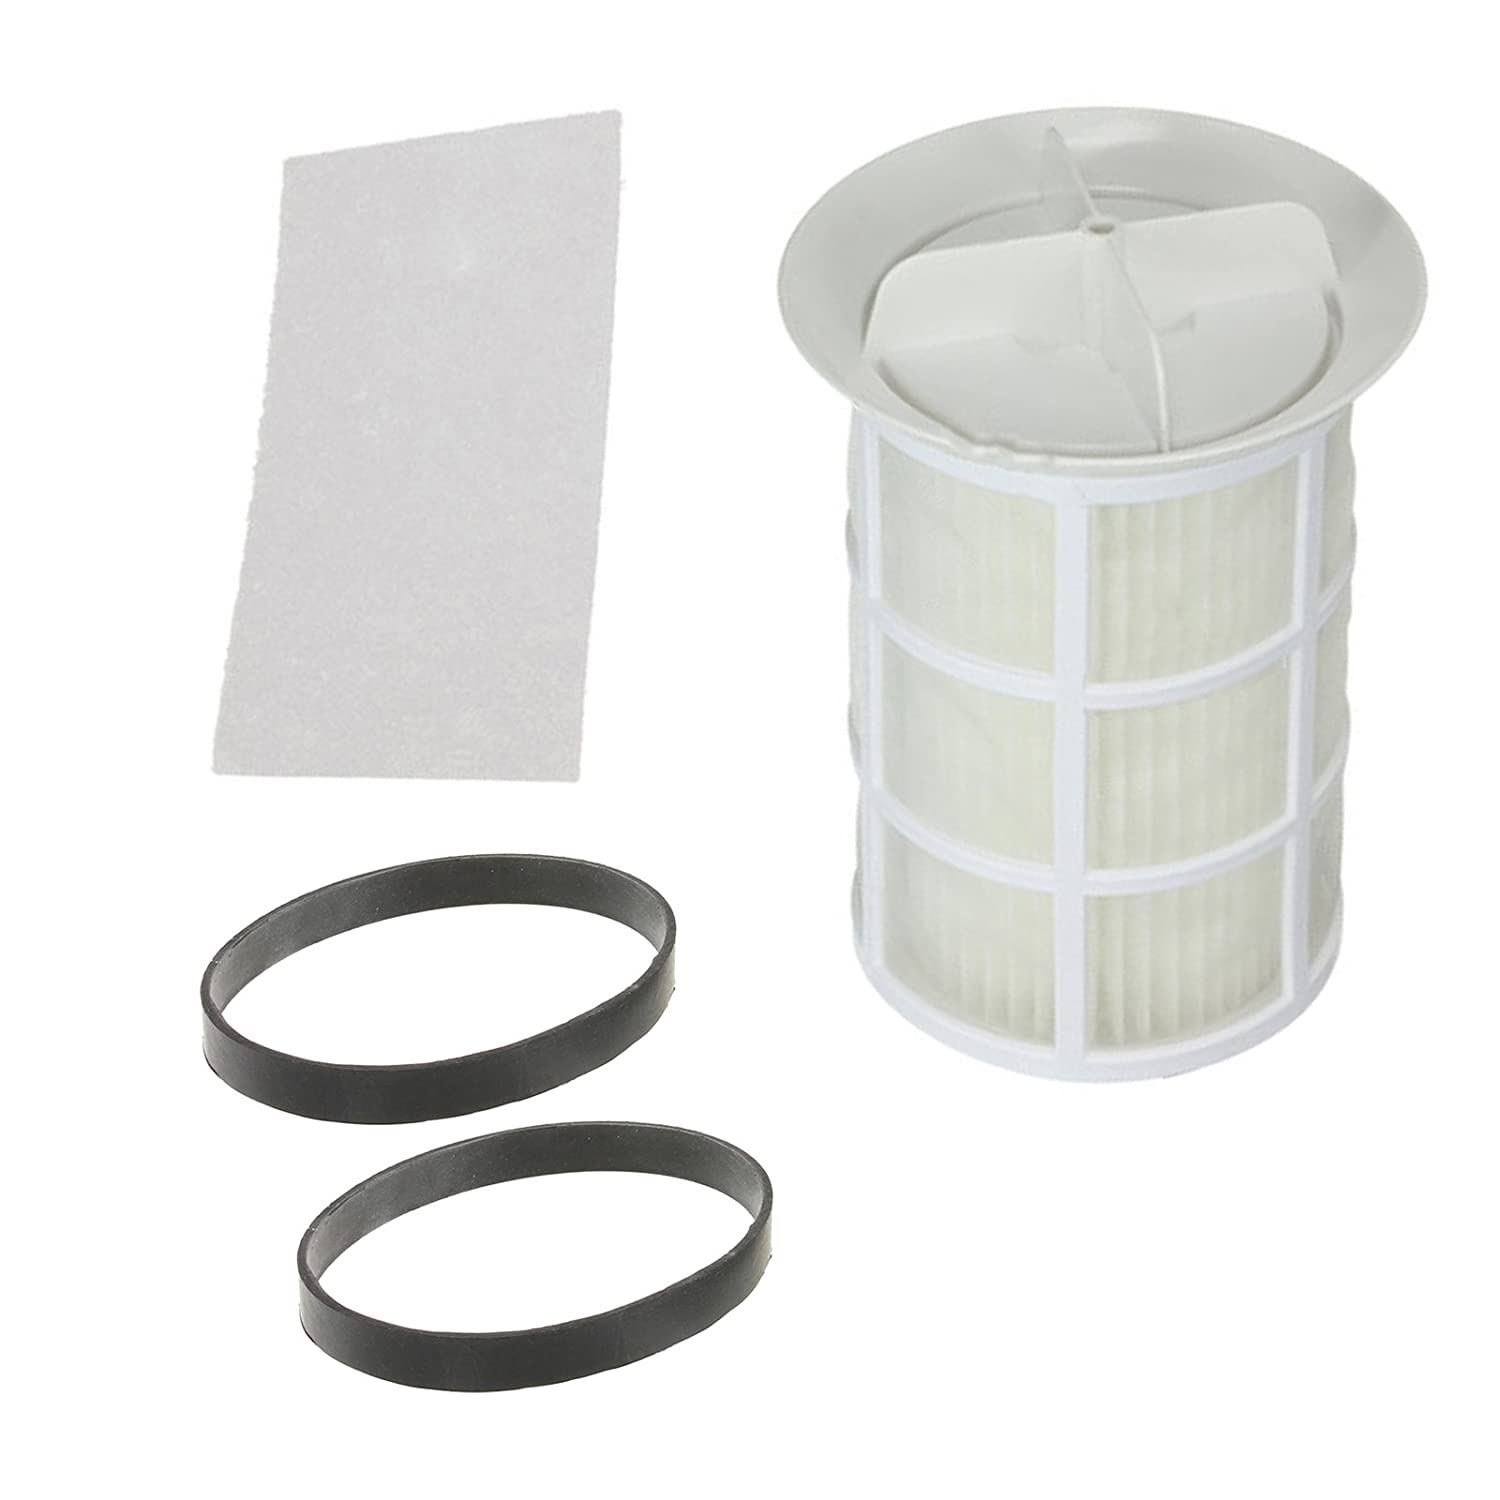 For HOOVER WHS2003 WHS2101 Vacuum Cleaner S109 HEPA FILTER /& 2 DRIVE BELTS